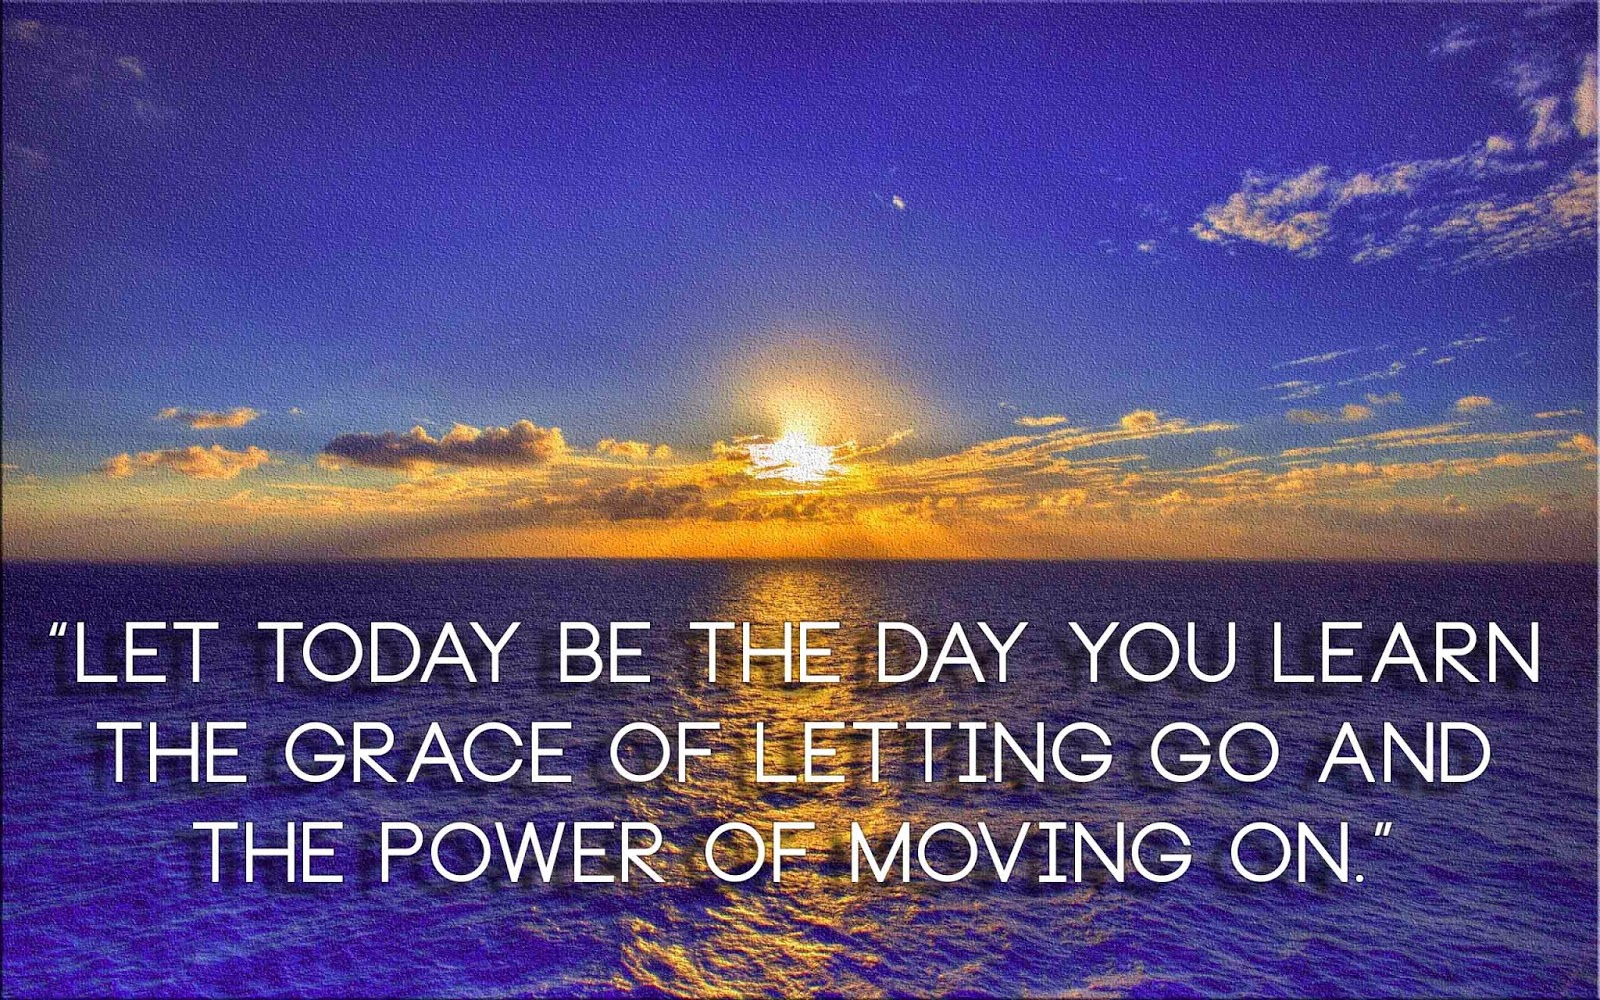 Anonymous Quotes About Life Let Today Be The Day You Learn The Grace Of Letting Go And The